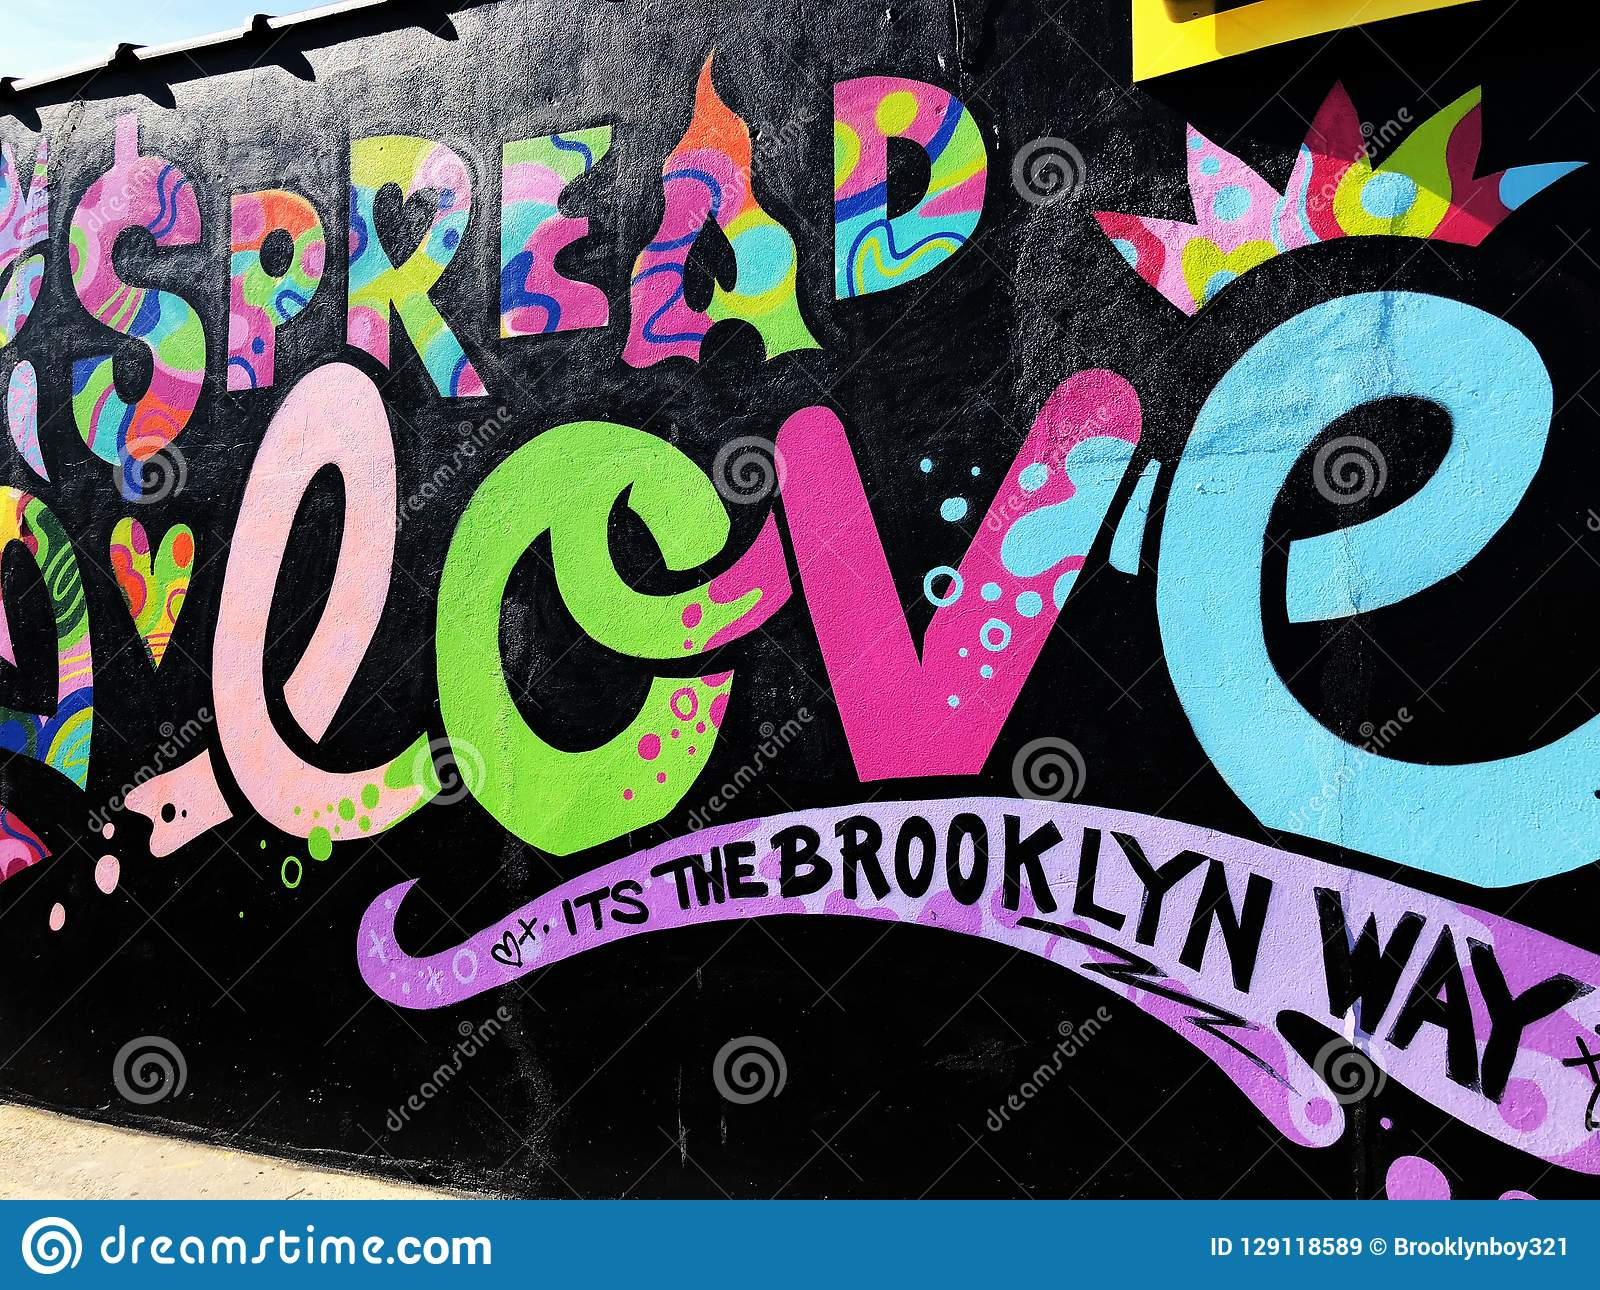 Grafitti Wall Editorial Stock Image Image Of Jewelry 129118589 Free for commercial use no attribution required high quality images. https www dreamstime com grafitti wall colorful graffiti street art painting brooklyn new york image129118589